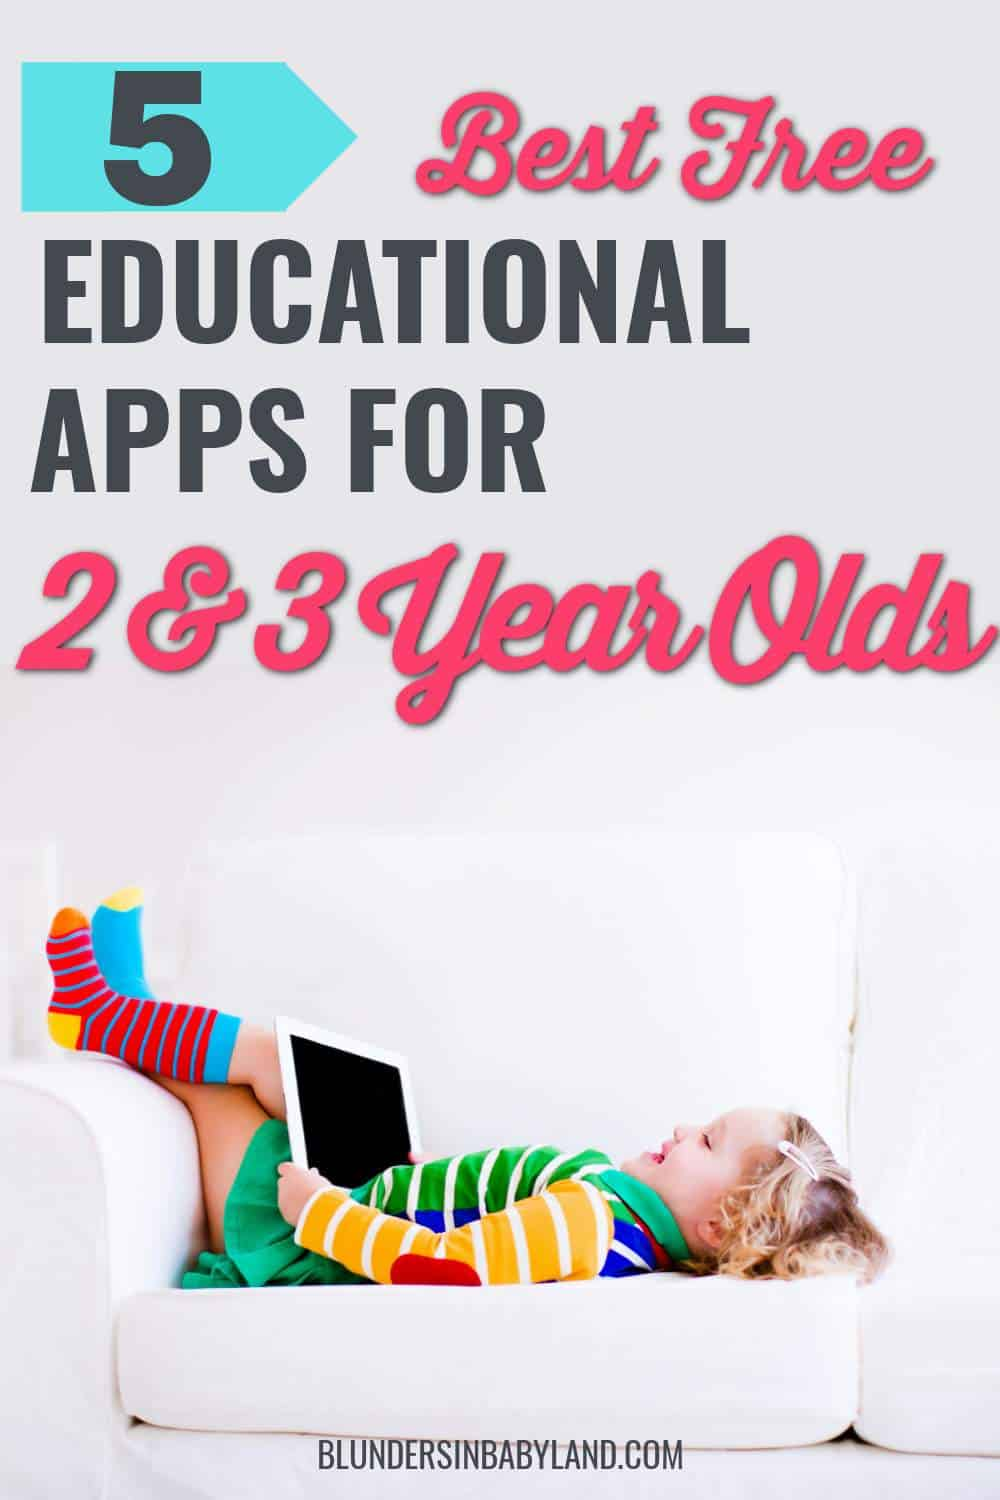 Best Free Apps for Toddlers - Free Apps for 2 Year Olds